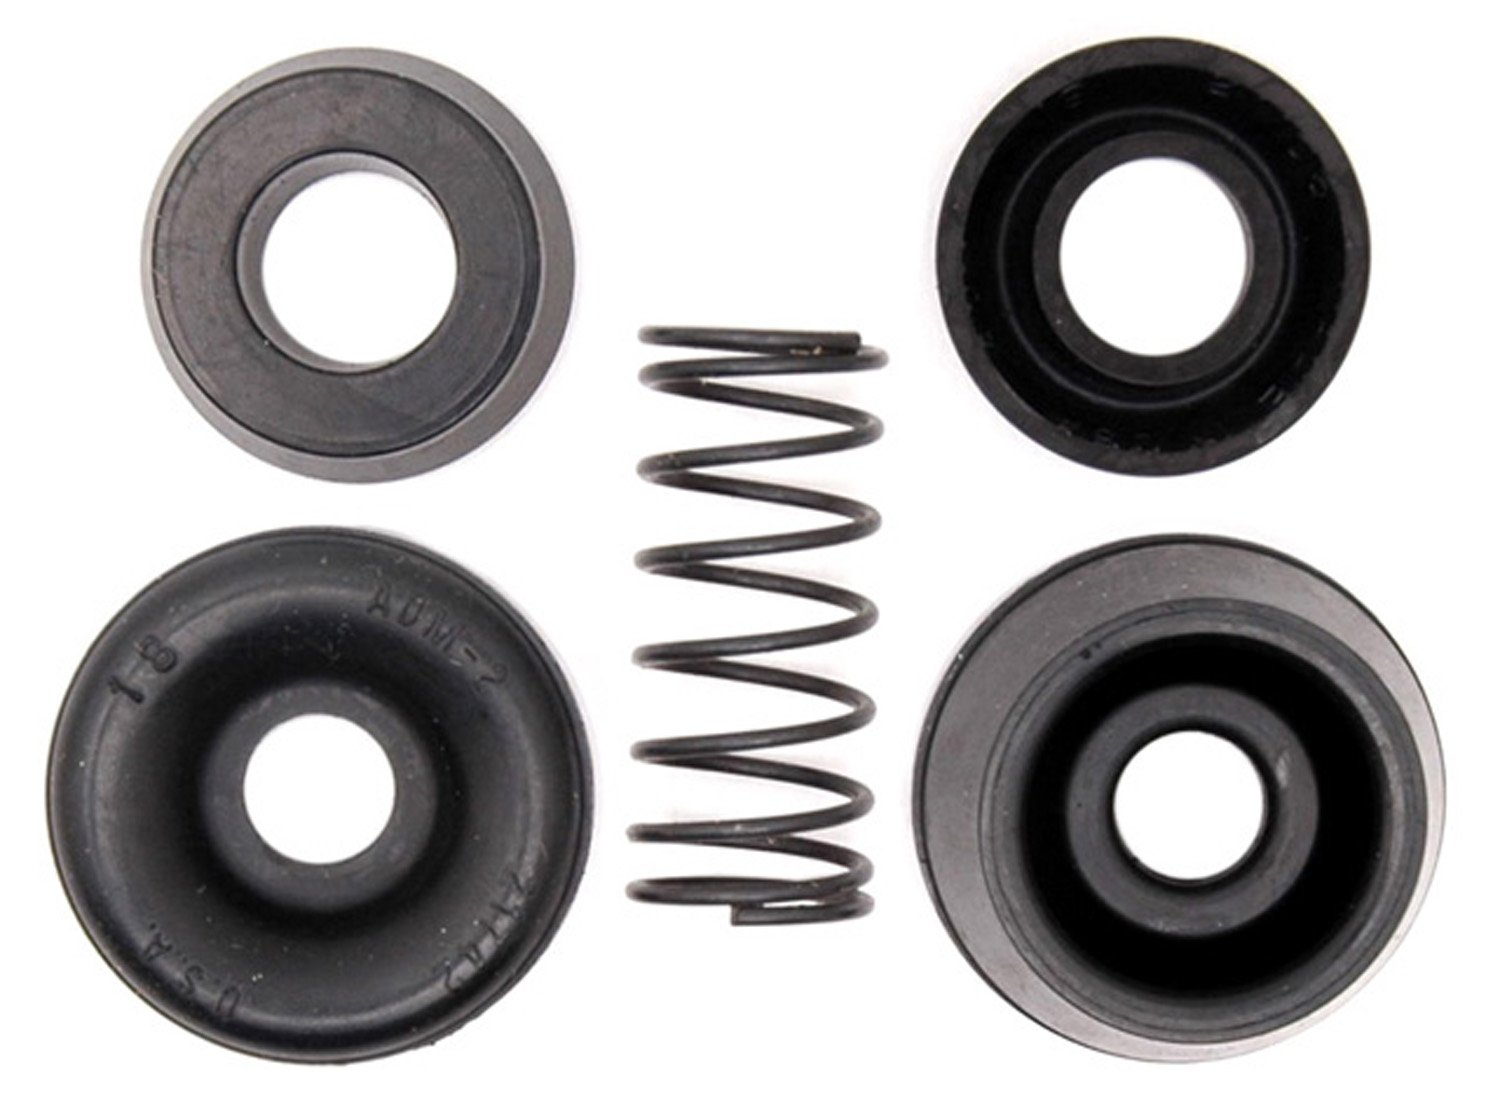 Boots and Seals ACDelco 18G141 Professional Rear Drum Brake Wheel Cylinder Repair Kit with Spring